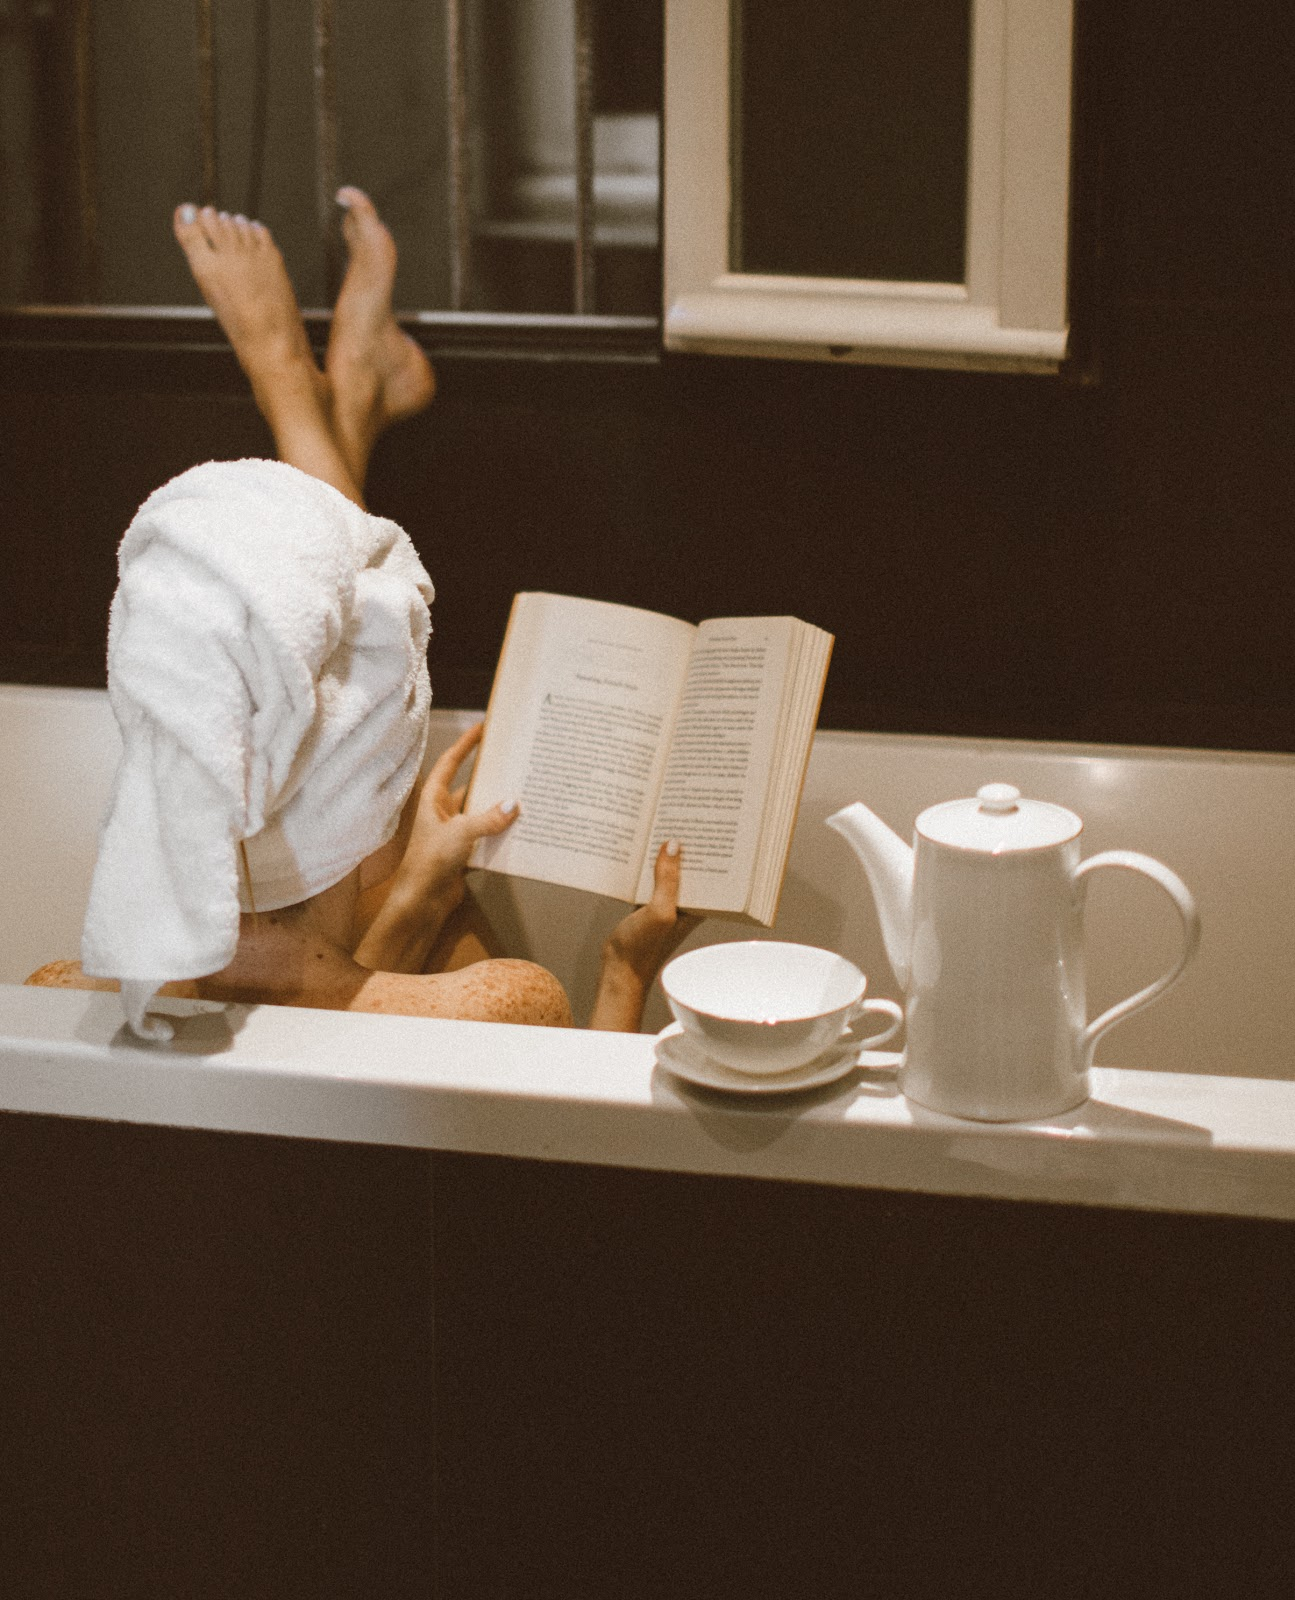 Coronavirus Crisis: 5 Books to Read While You're Self-Isolating at Home